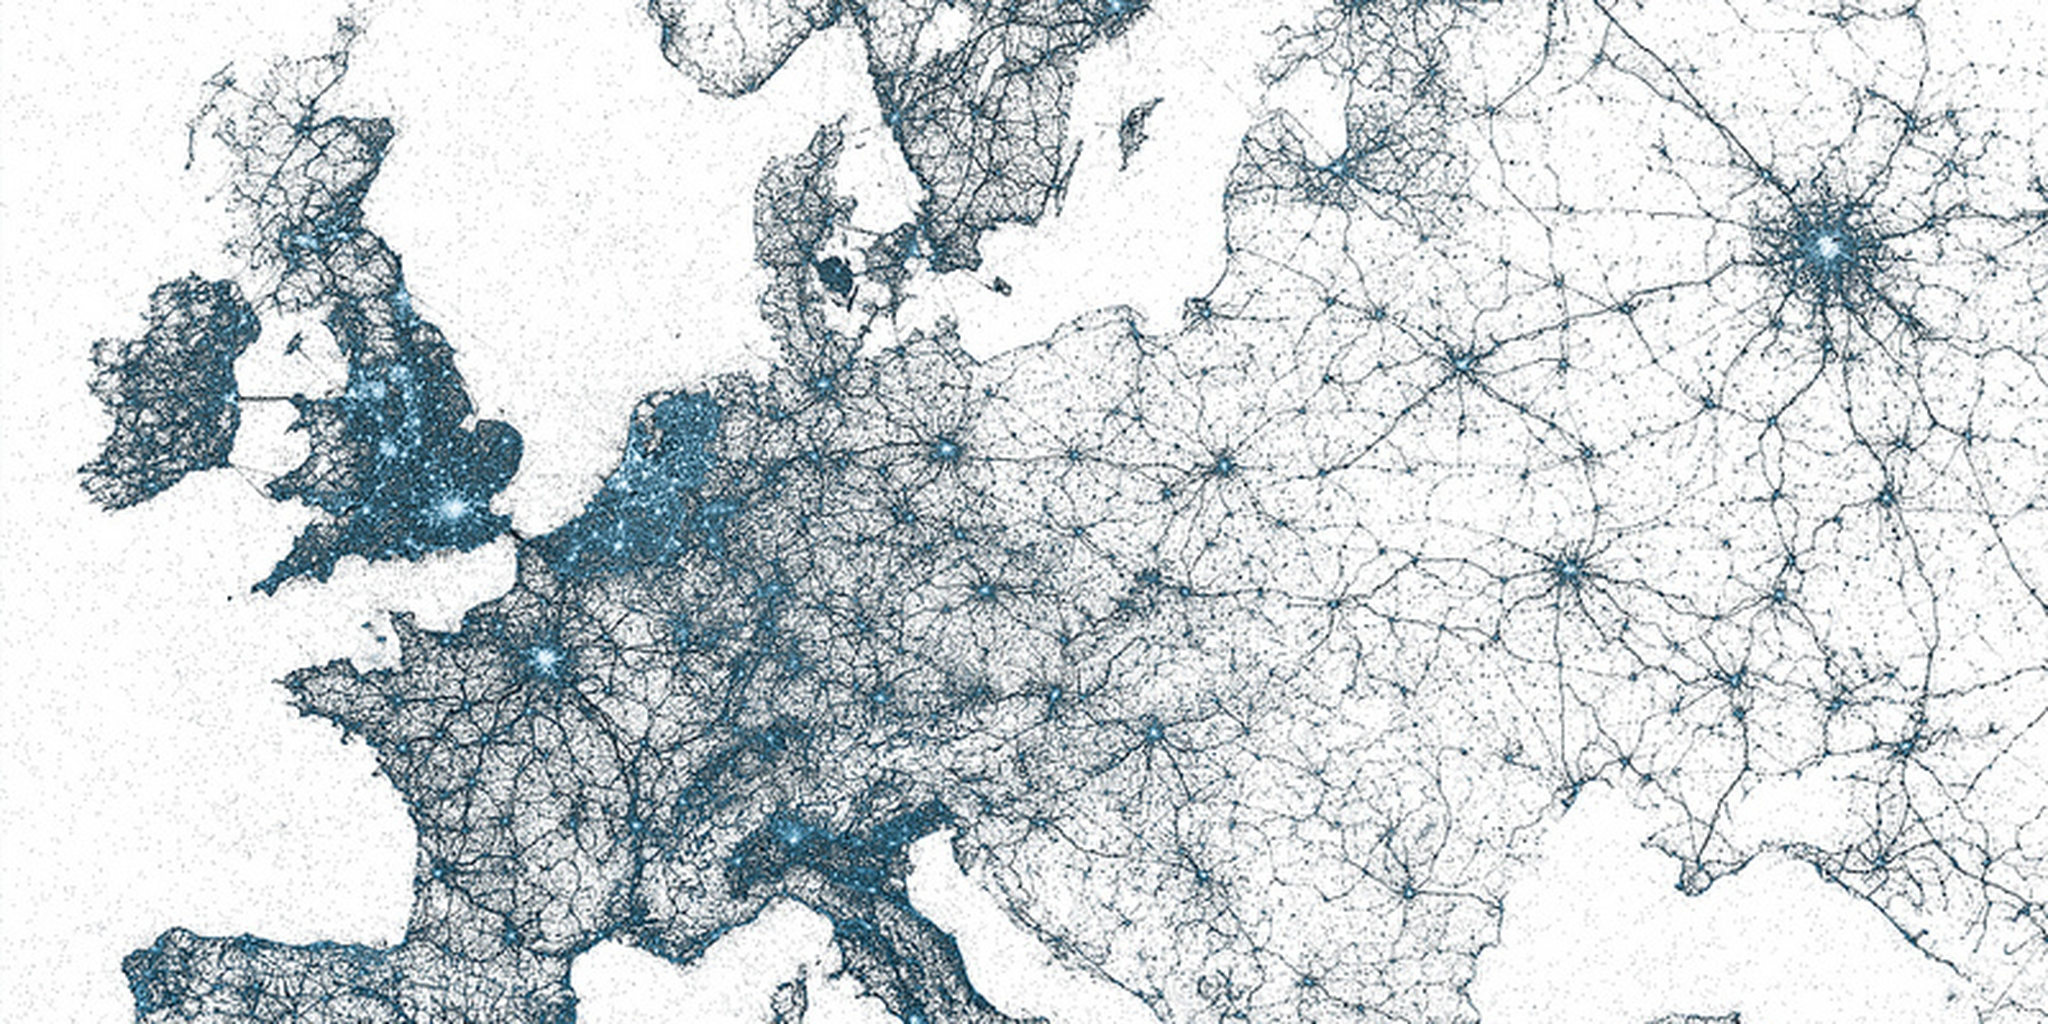 All sizes | Visualization: Europe | Flickr - Photo Sharing!